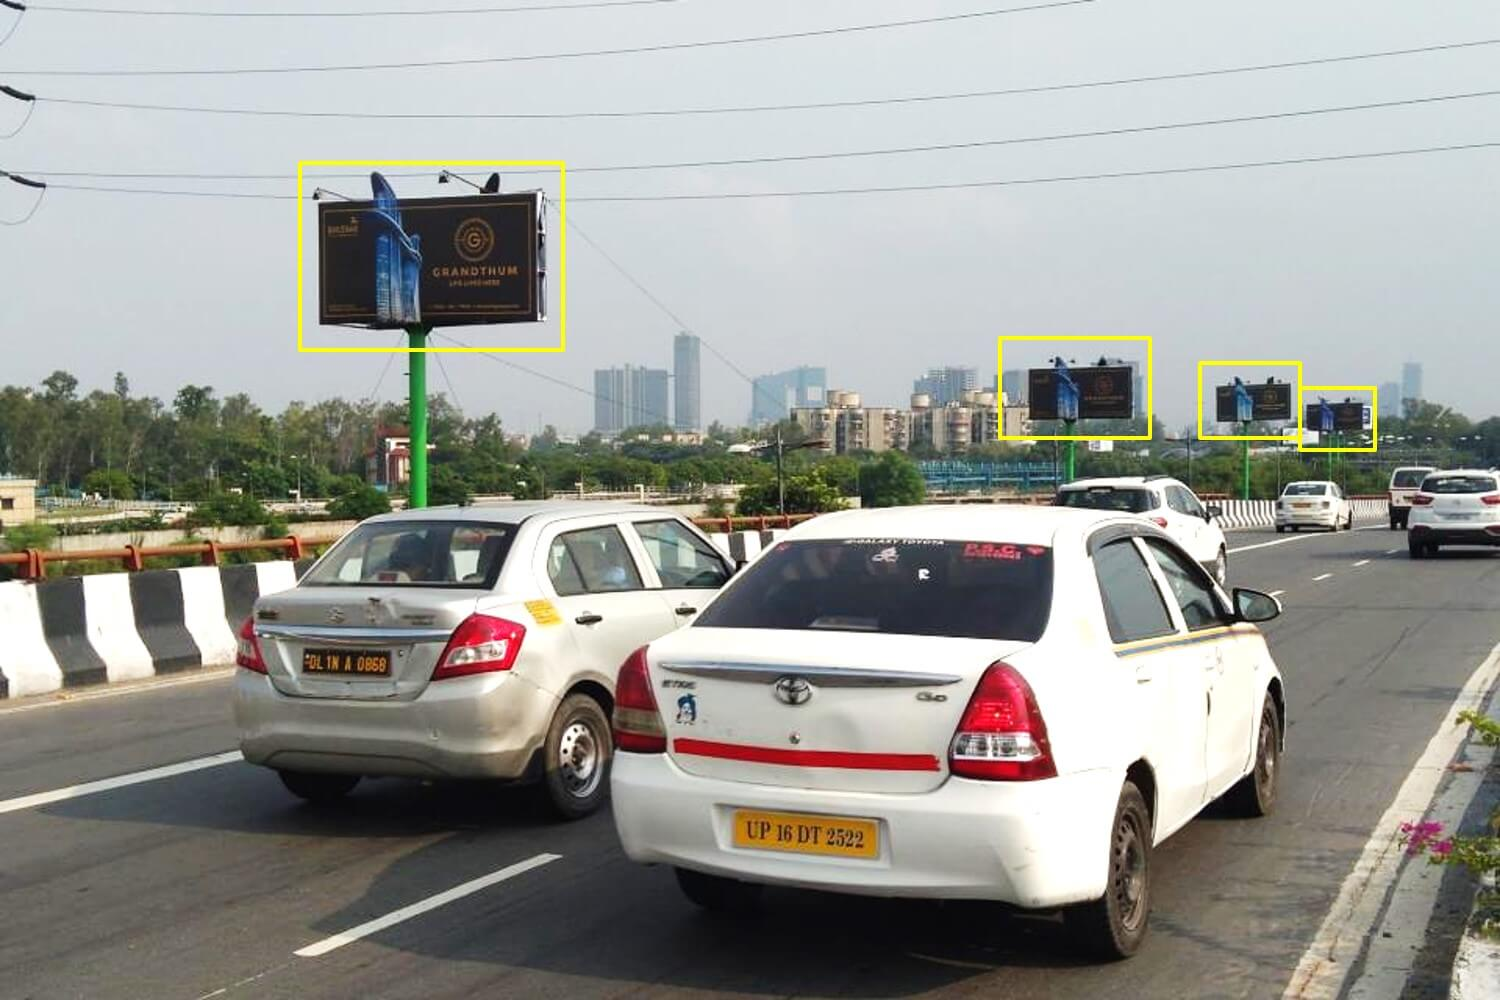 Option No.1 Outdoor Unipole Advertising at Mayur Vihar Nr Hotel Hilton, Link Road towards Noida